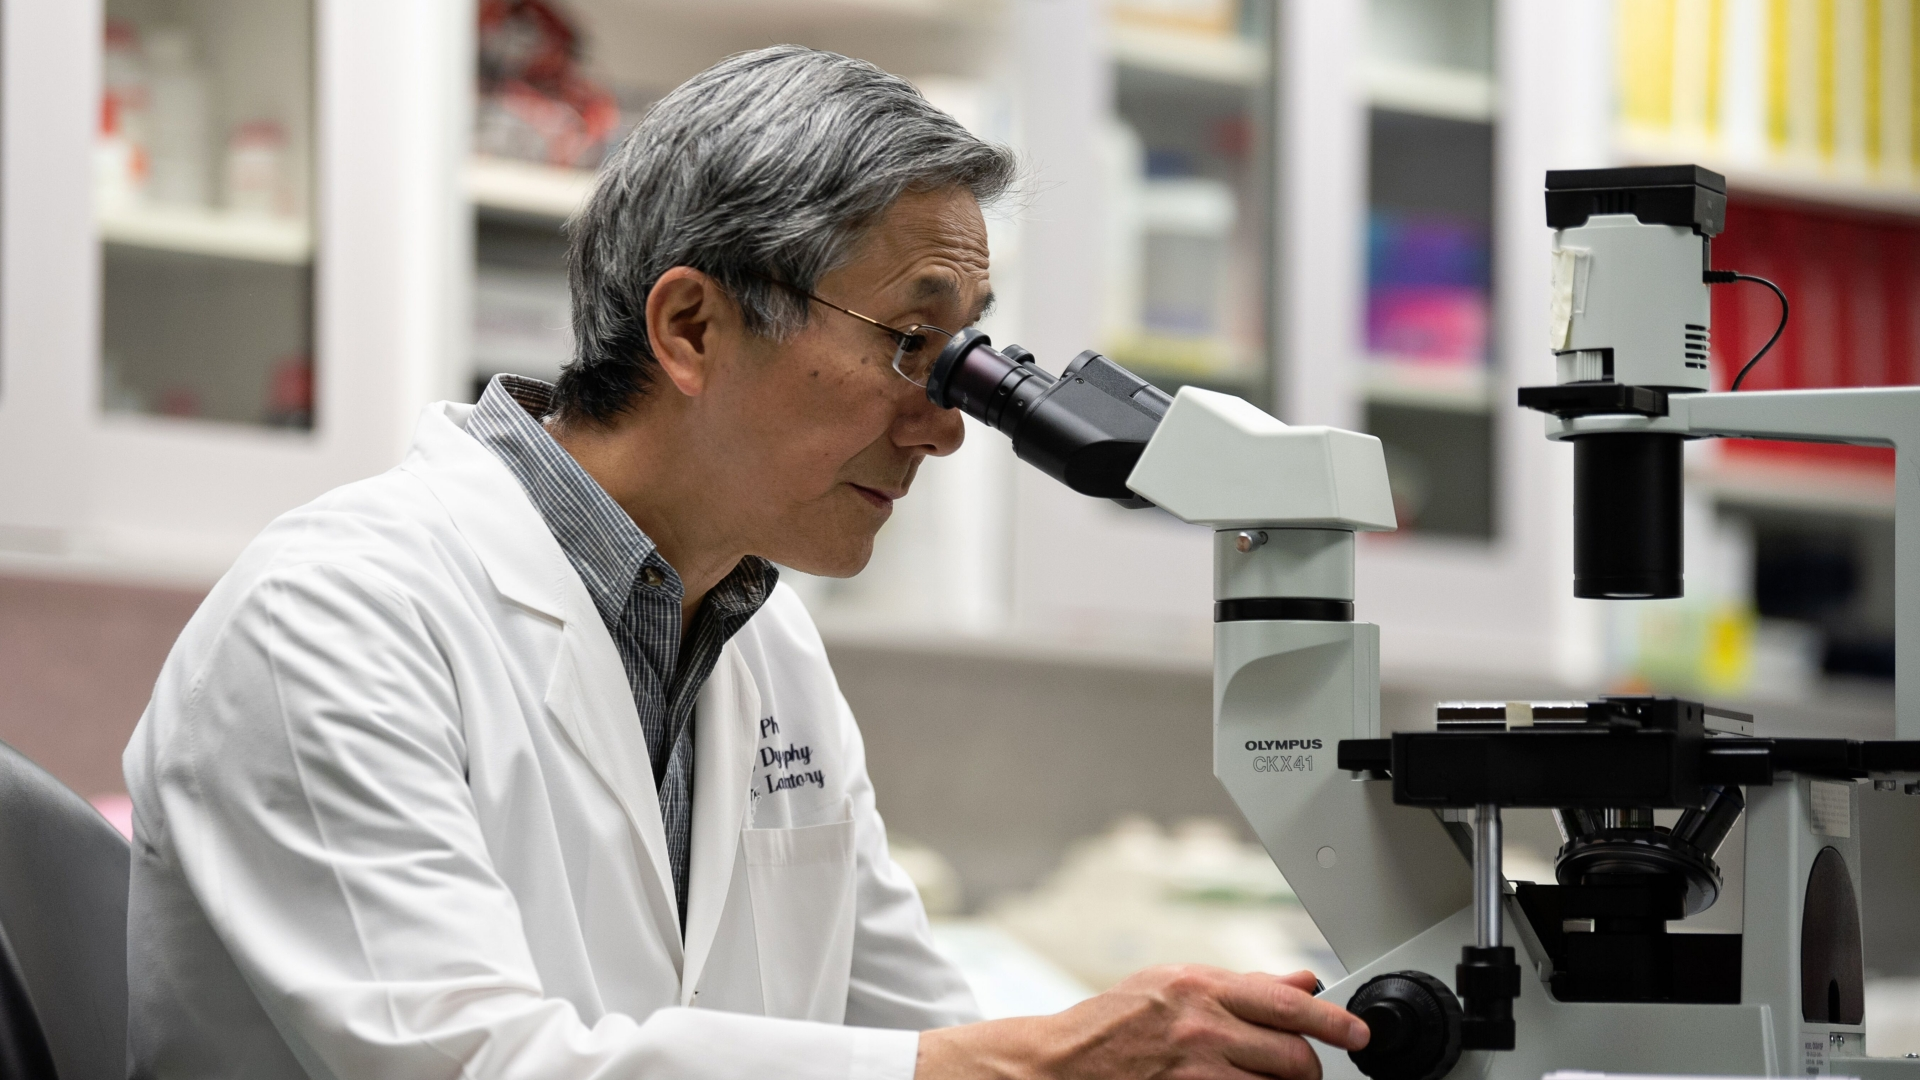 A new therapy that could change the face of Muscular Dystrophy treatment has been discovered in Charlotte.